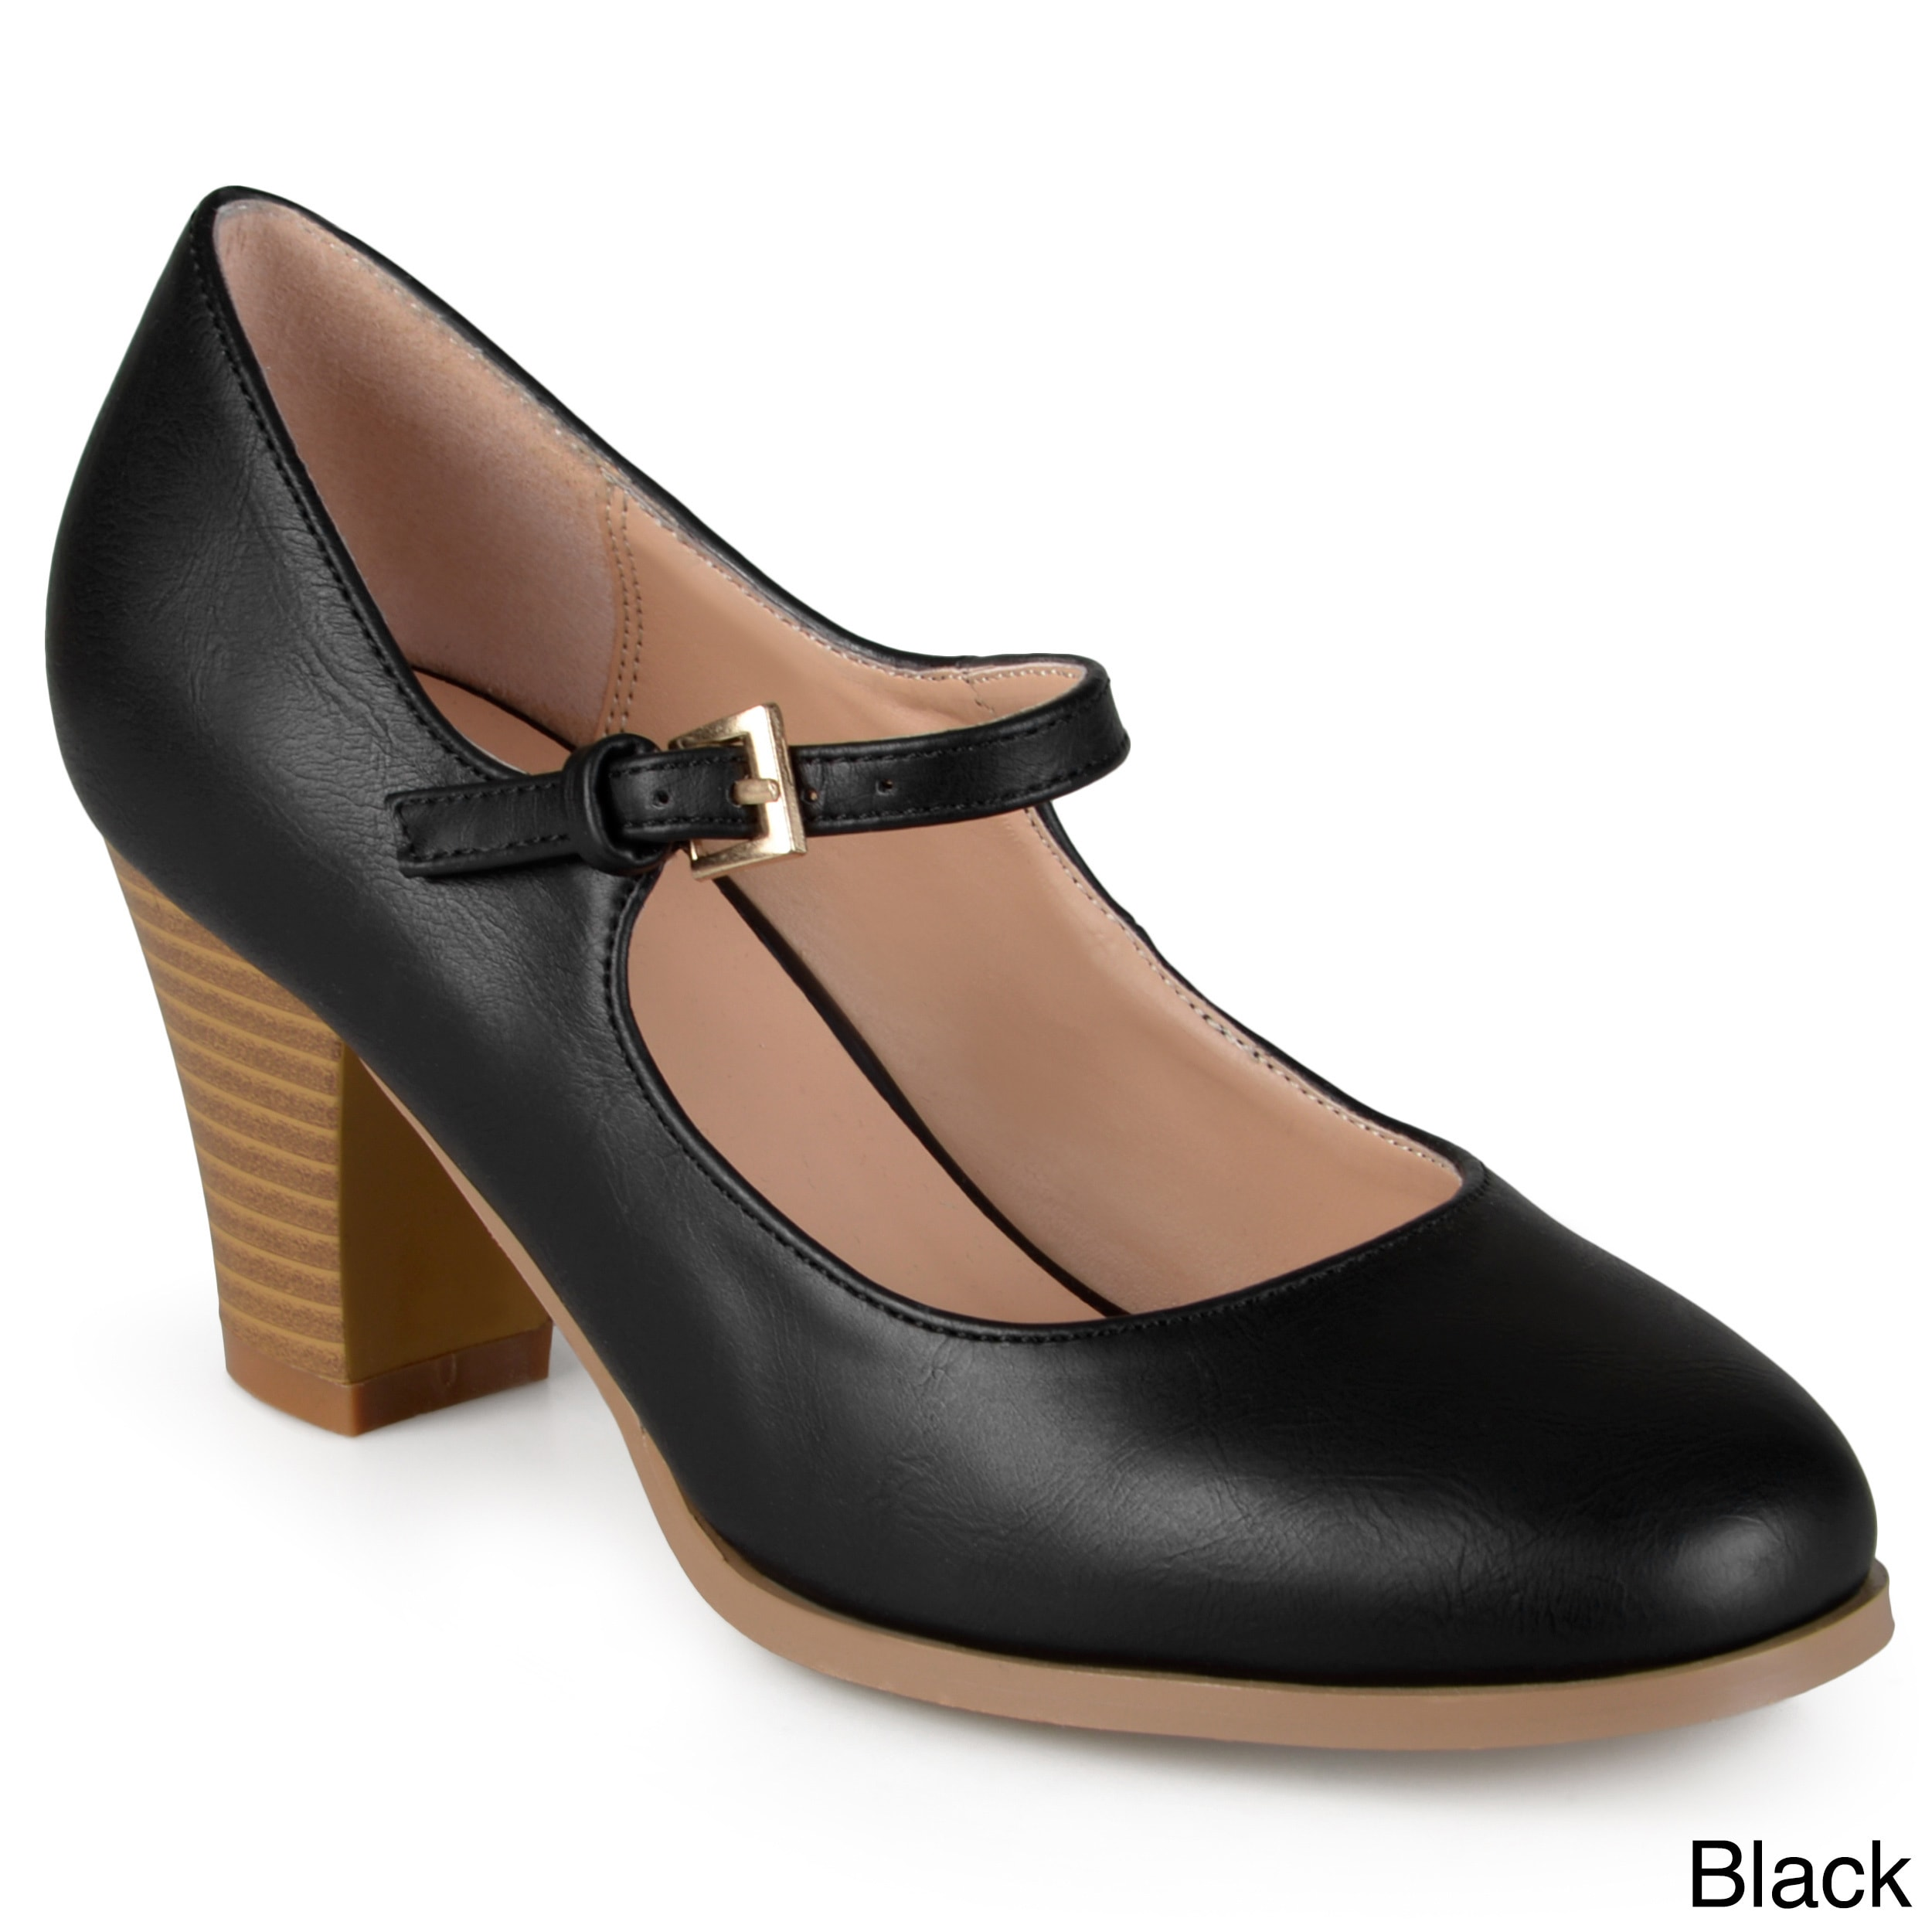 a78918aa4f7 Shop Journee Collection Women s  Jamie  Classic Mary Jane Pumps - On Sale -  Free Shipping On Orders Over  45 - Overstock - 11079398